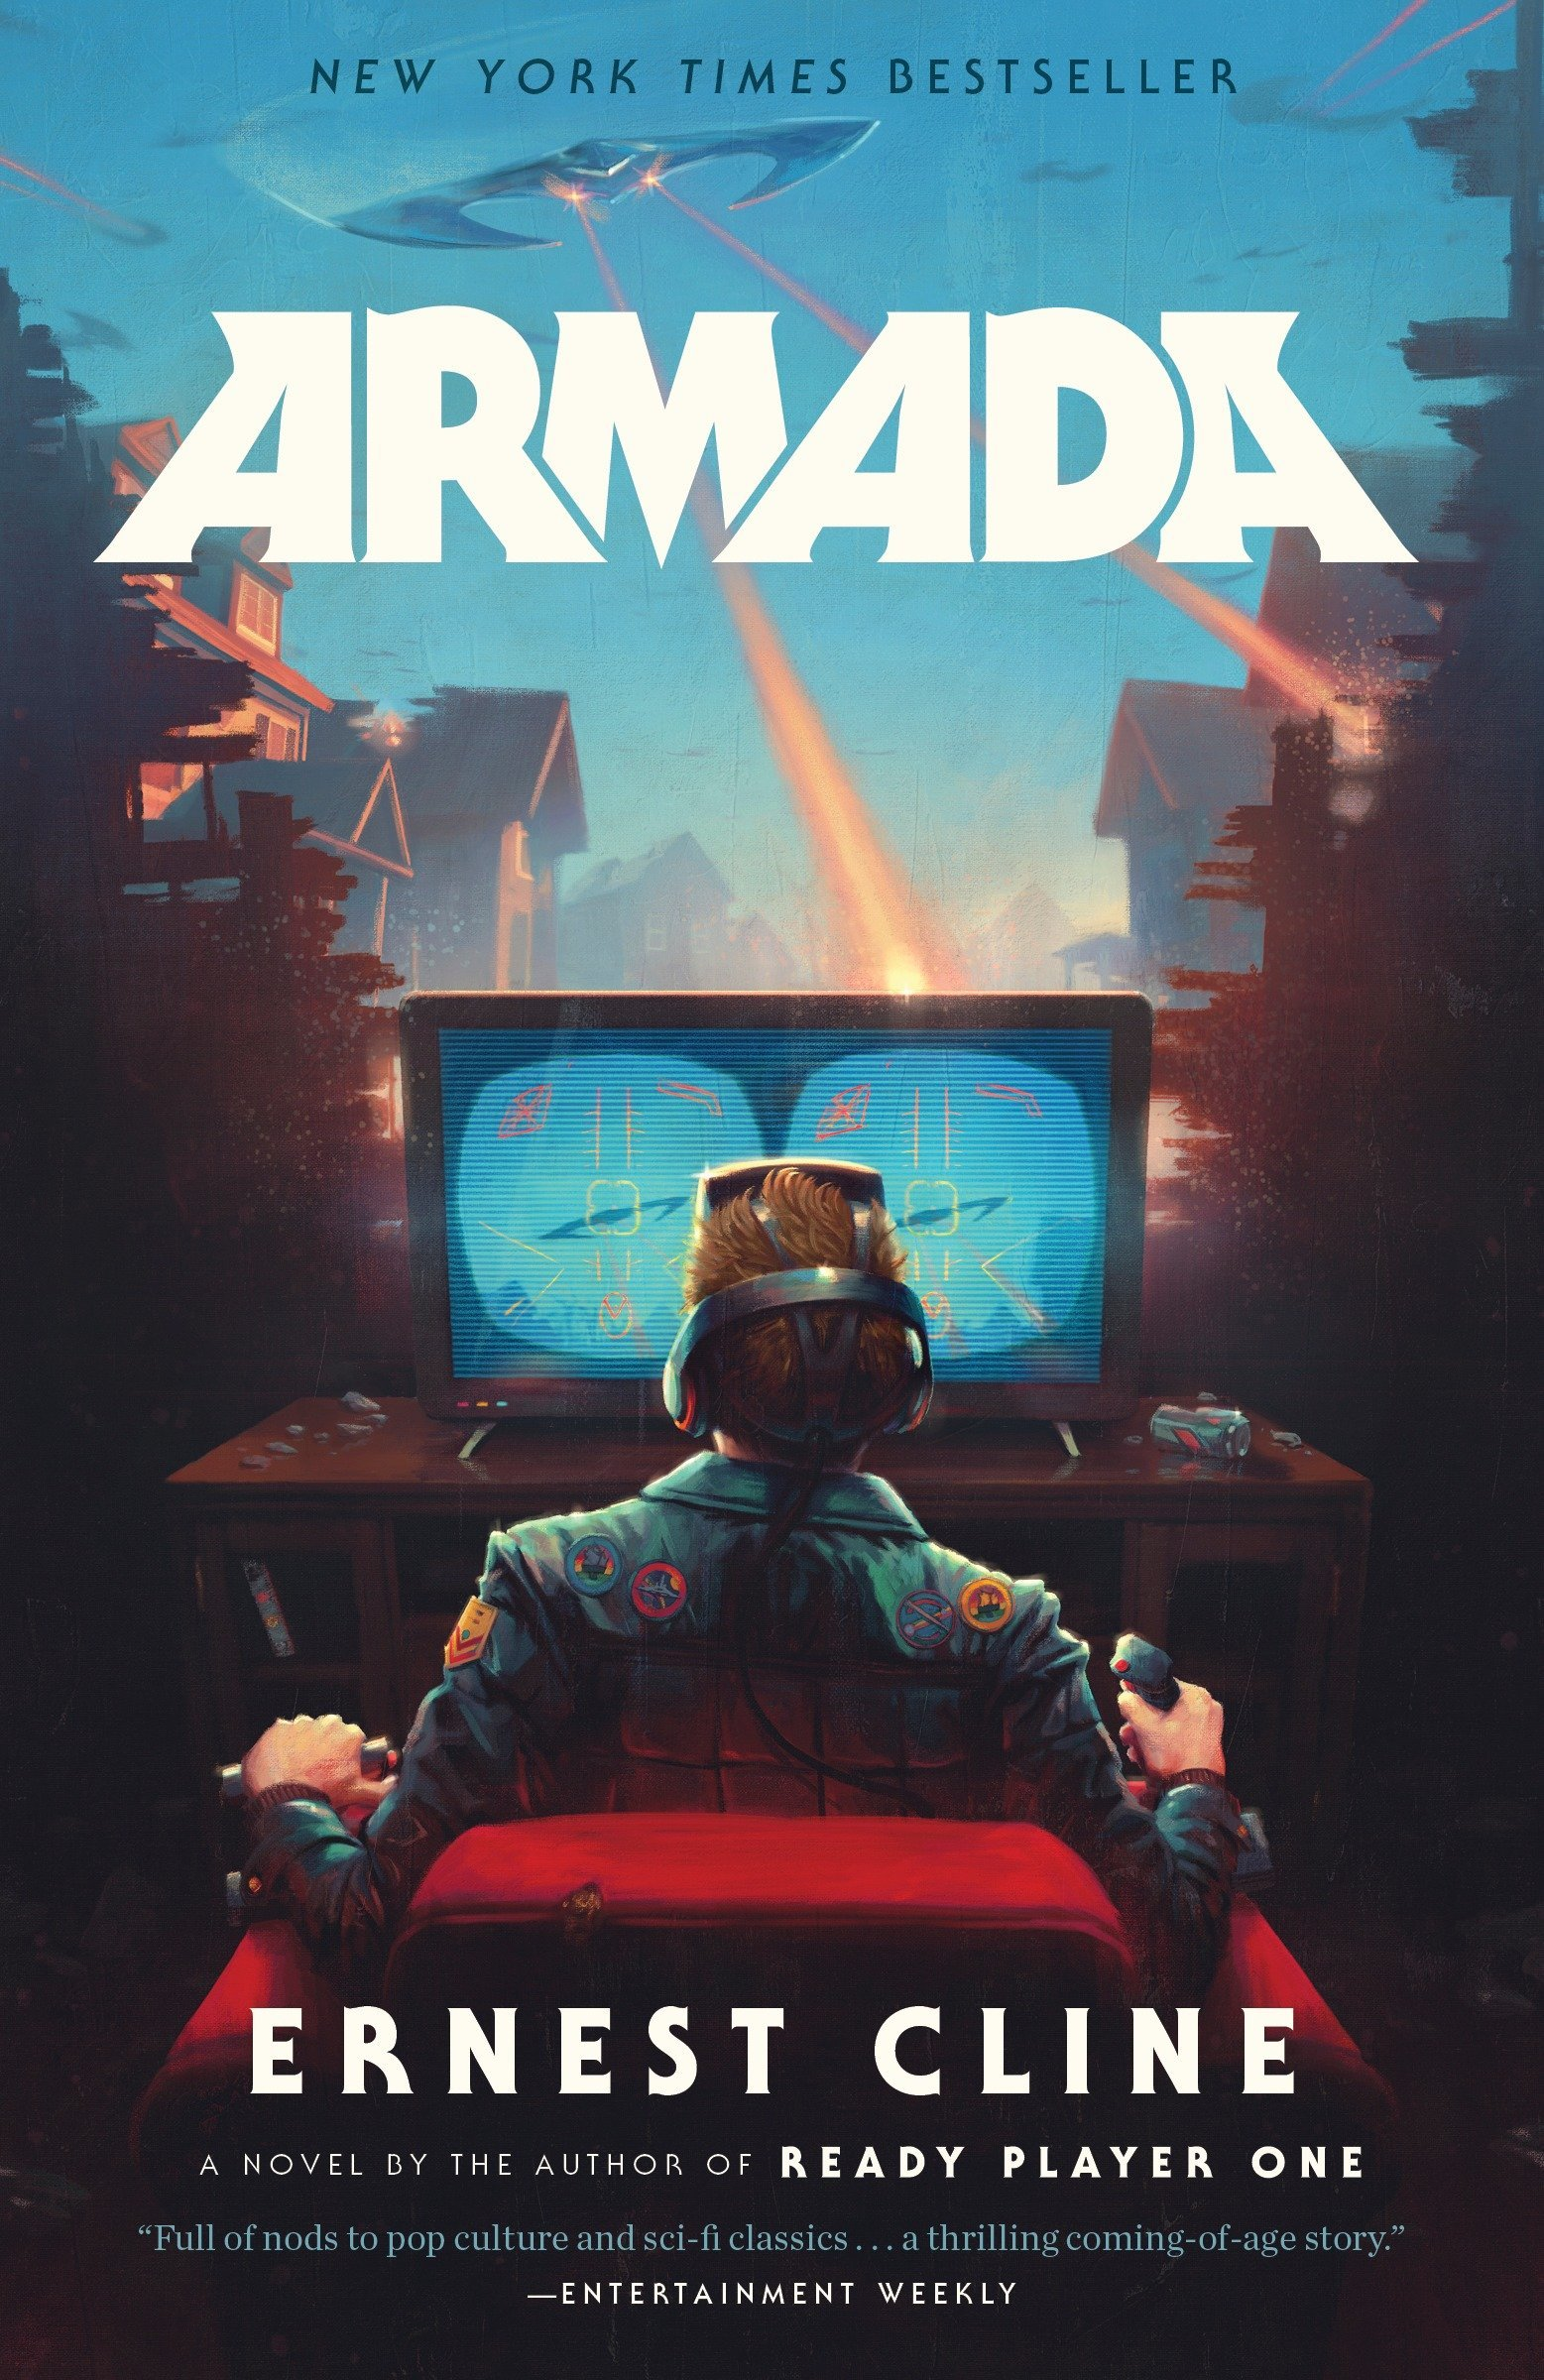 Amazon.com: Armada: A novel by the author of Ready Player One  (9780804137270): Ernest Cline: Books